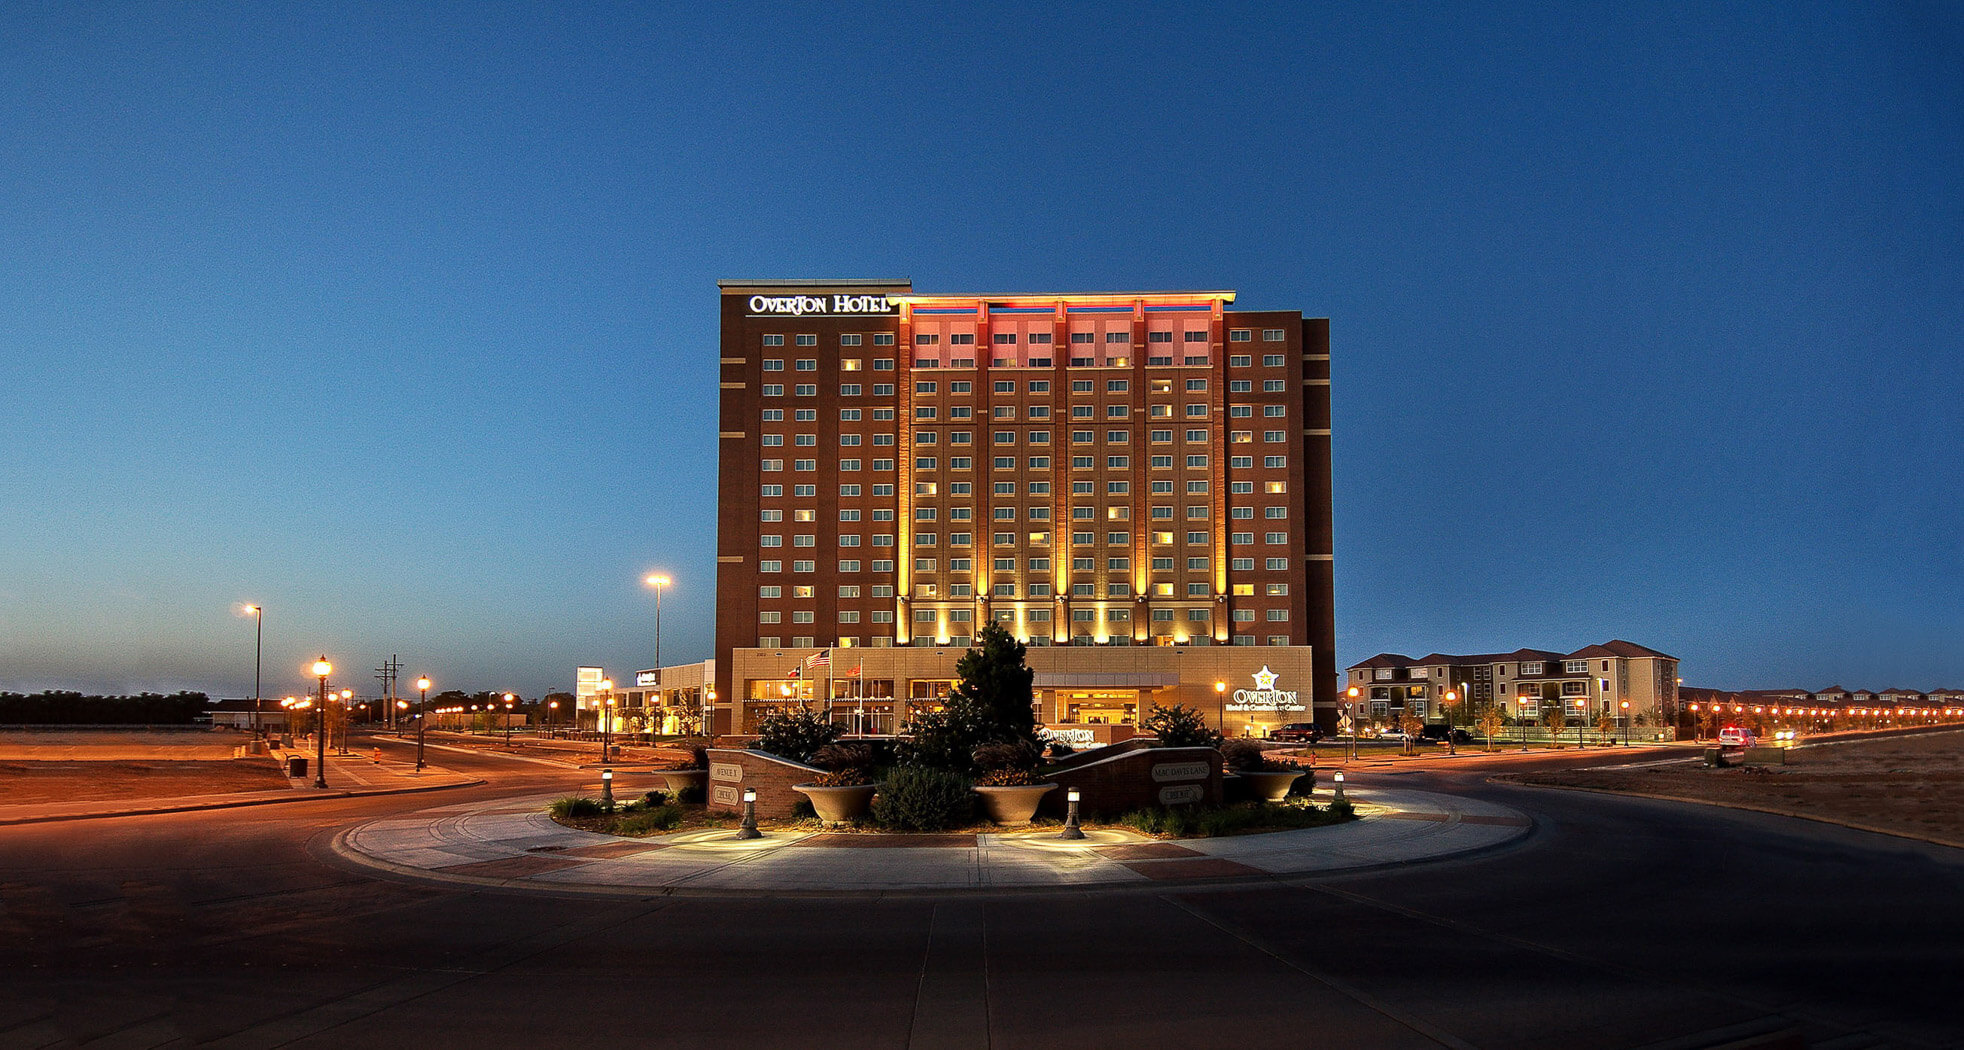 Hotels in Lubbock, TX | Photo Gallery | Overton Hotel on gallery f, gallery j, gallery l, gallery c, gallery a, gallery g, gallery n, gallery h, gallery p, gallery b, gallery i, gallery s, gallery v, gallery q, gallery e, gallery m, gallery k,